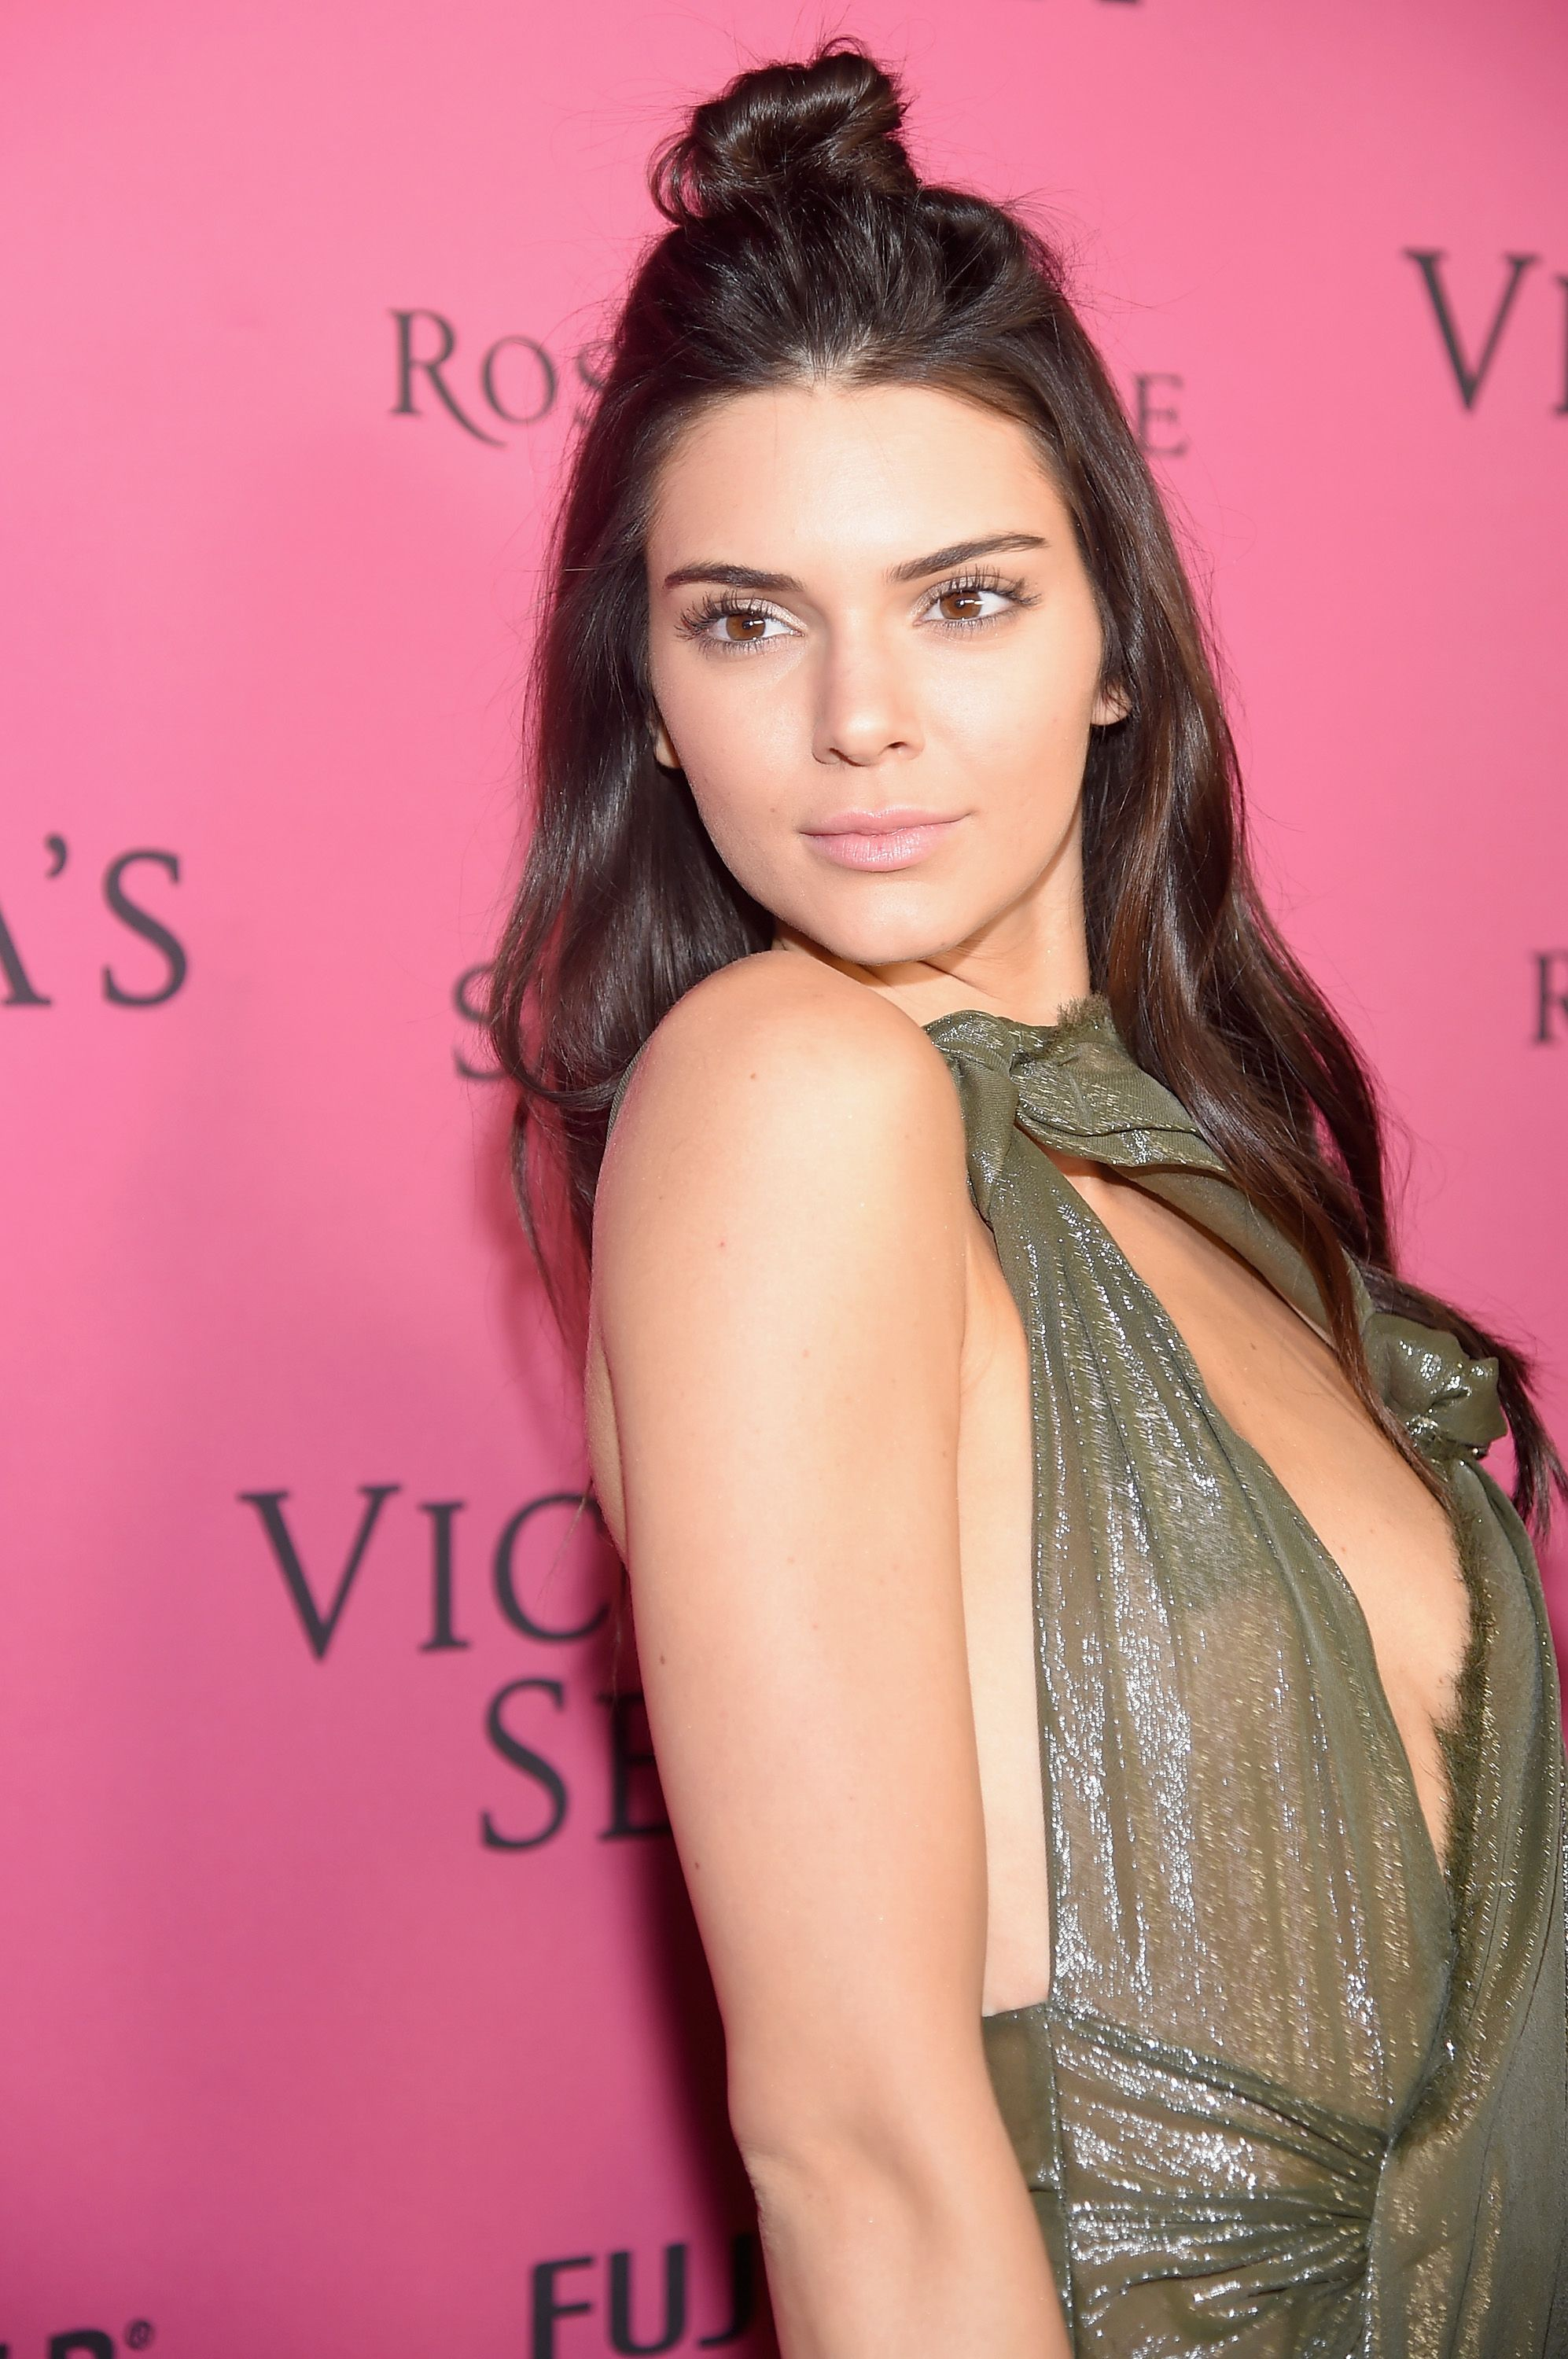 Kendall-Jenner-See-Through-16 (1)